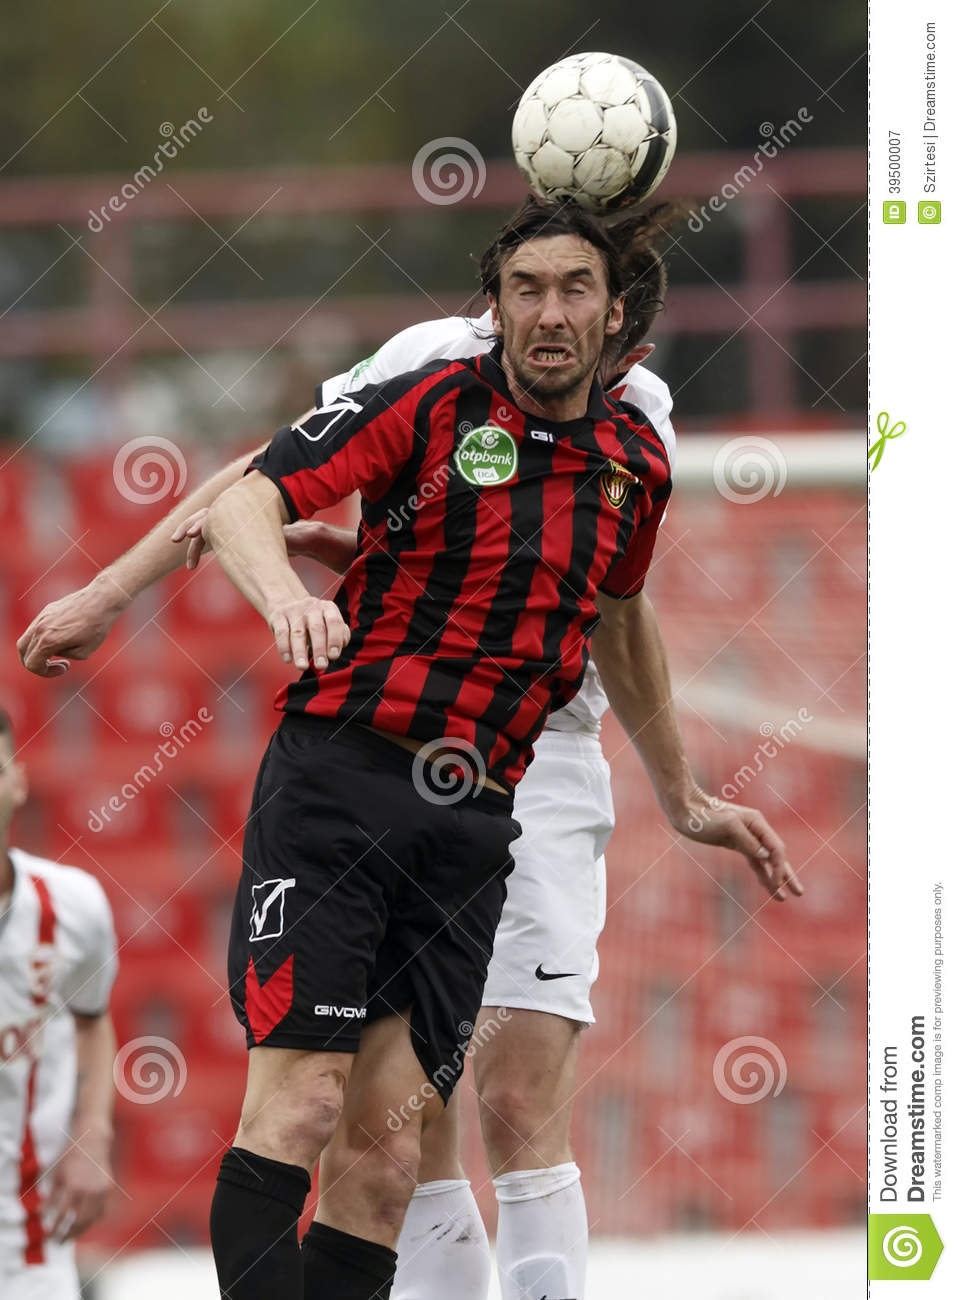 Honved vs. DVTK football match